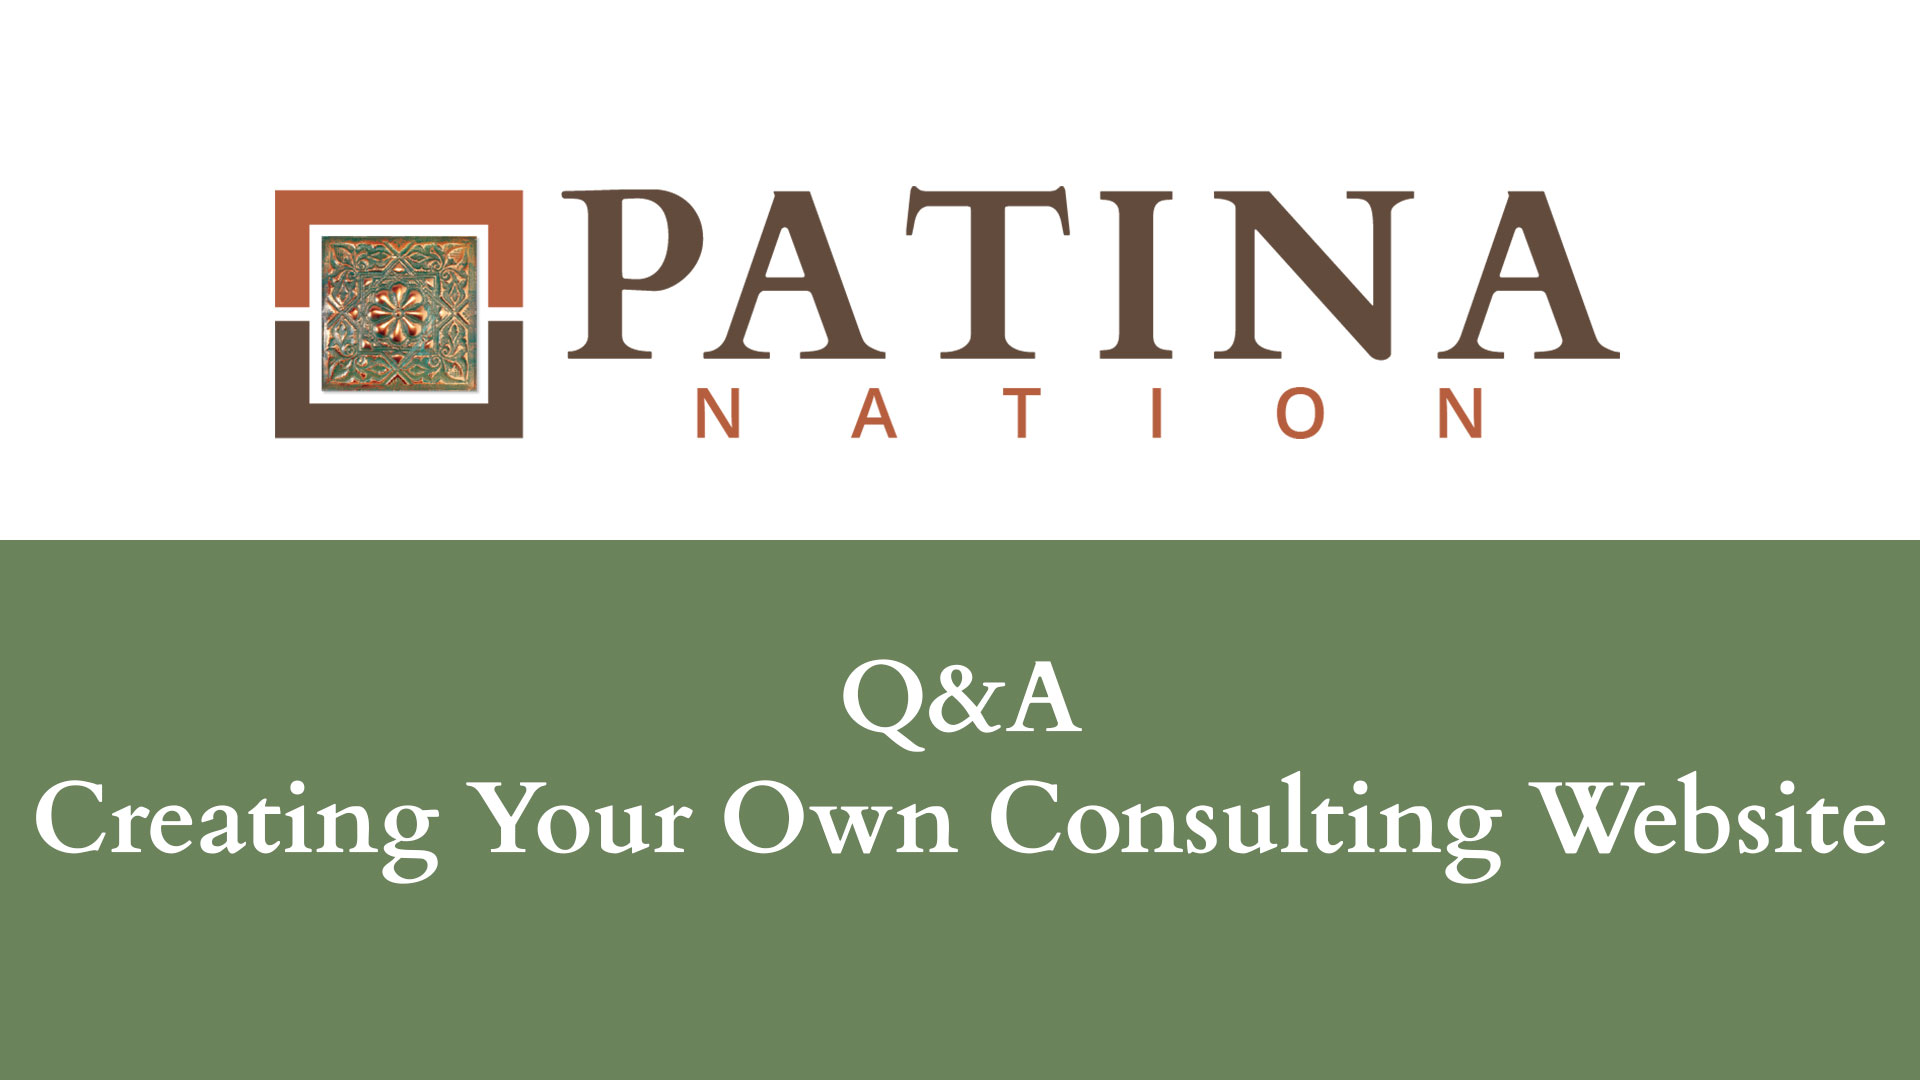 Q&A – Creating Your Own Consulting Website